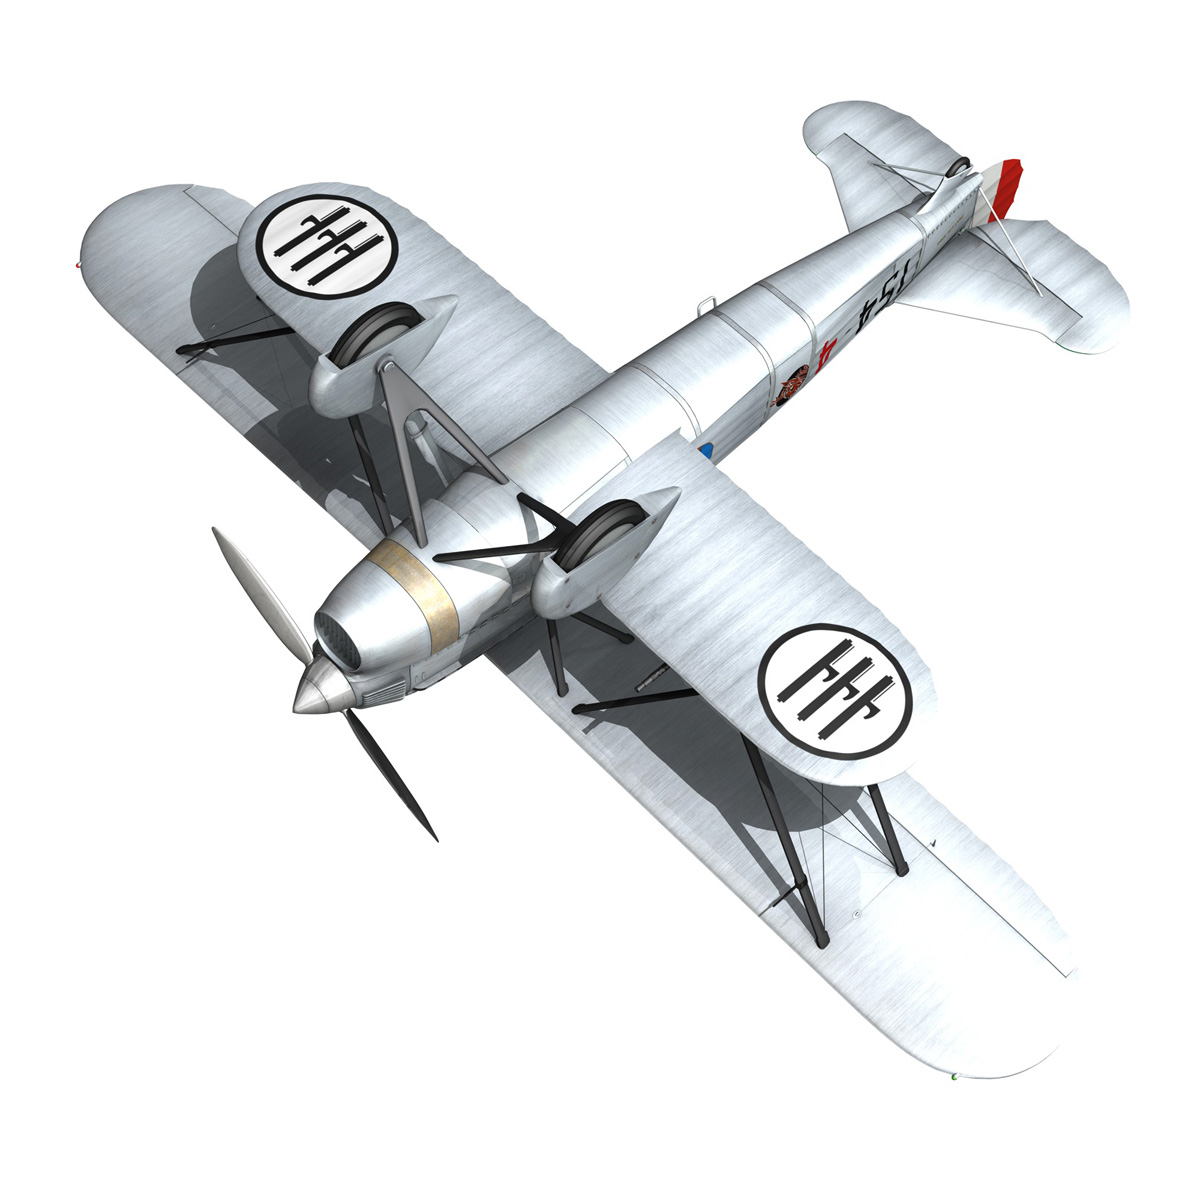 fiat cr.32 – italy airforce – 154 squadriglia 3d model fbx c4d lwo obj 268146